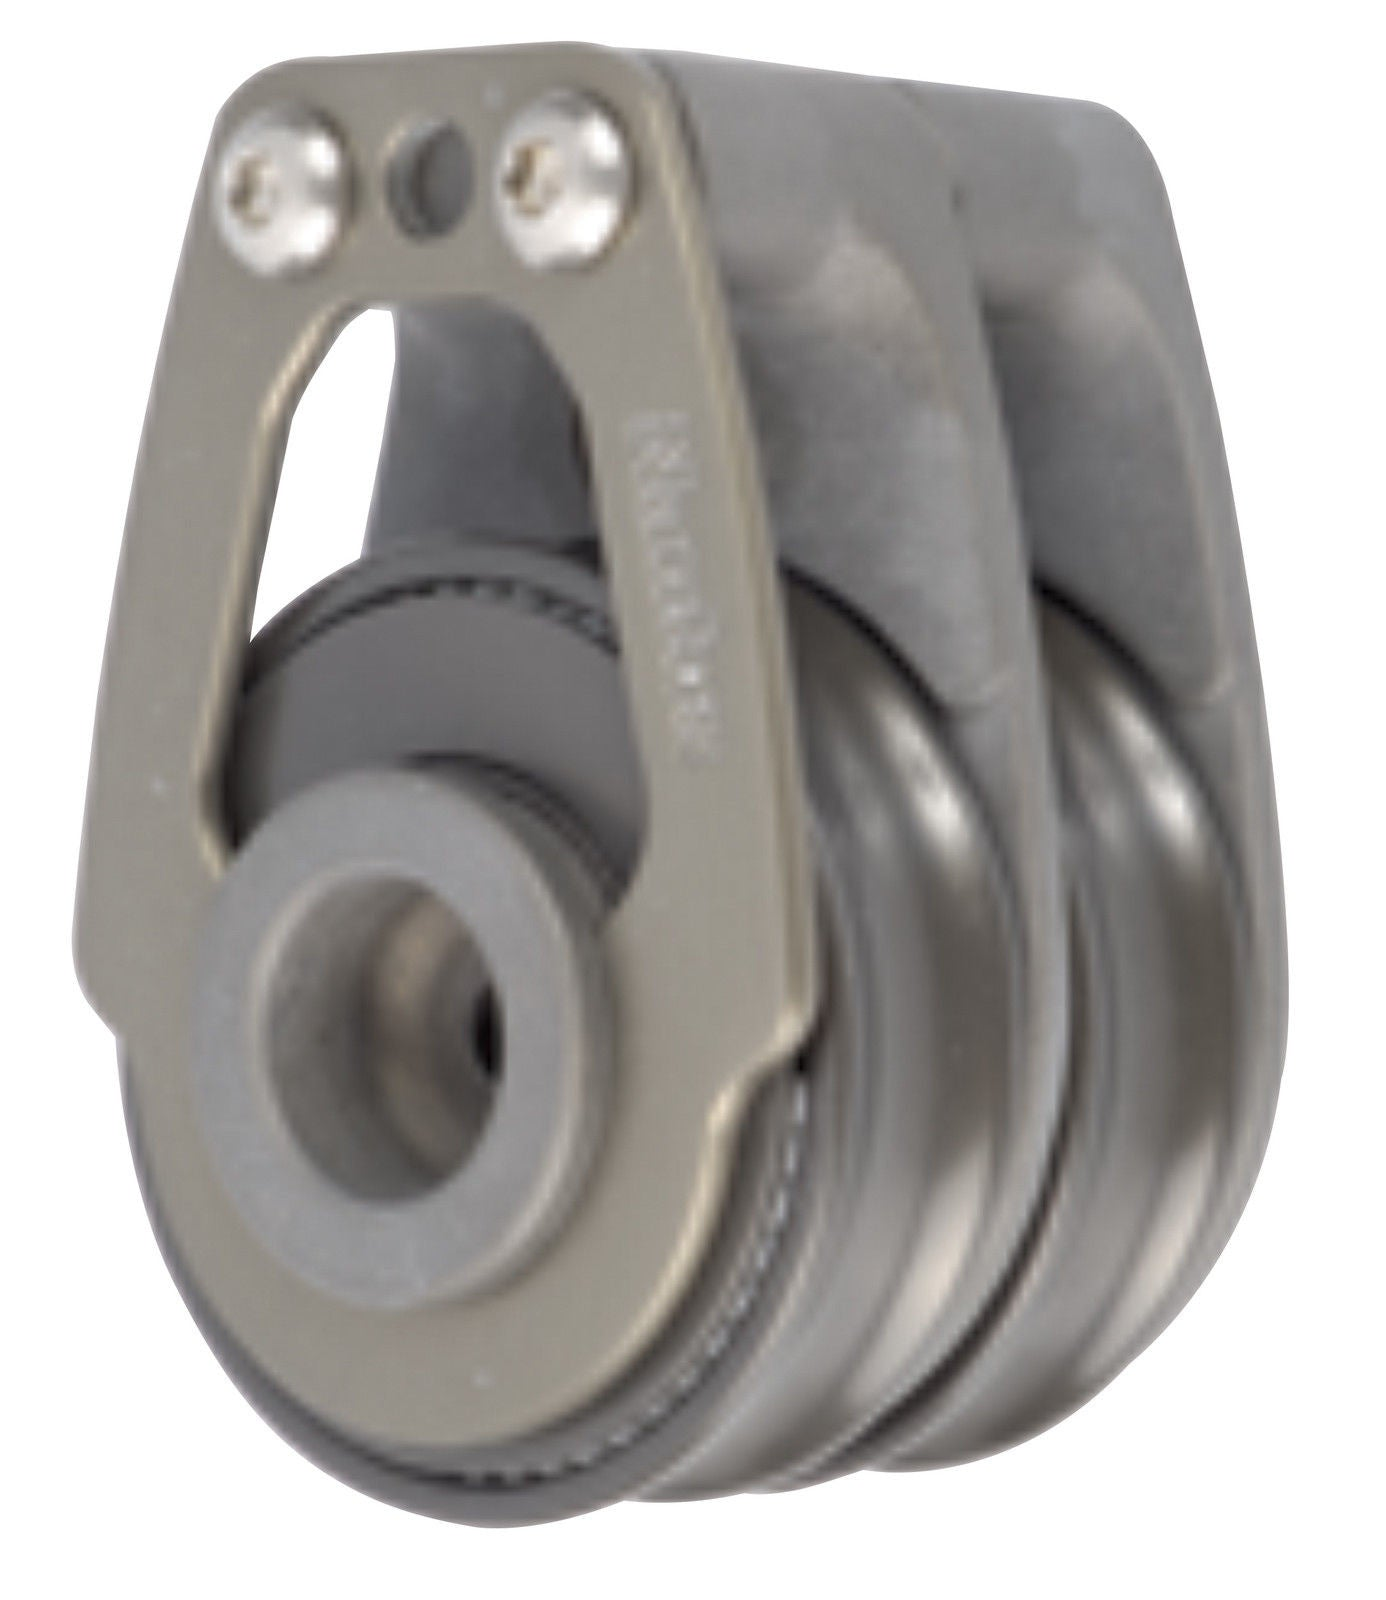 HT92655 Holt 75mm Triple Fixed Head Ratchet Block with 2 Cams /& 2 28mm Blocks